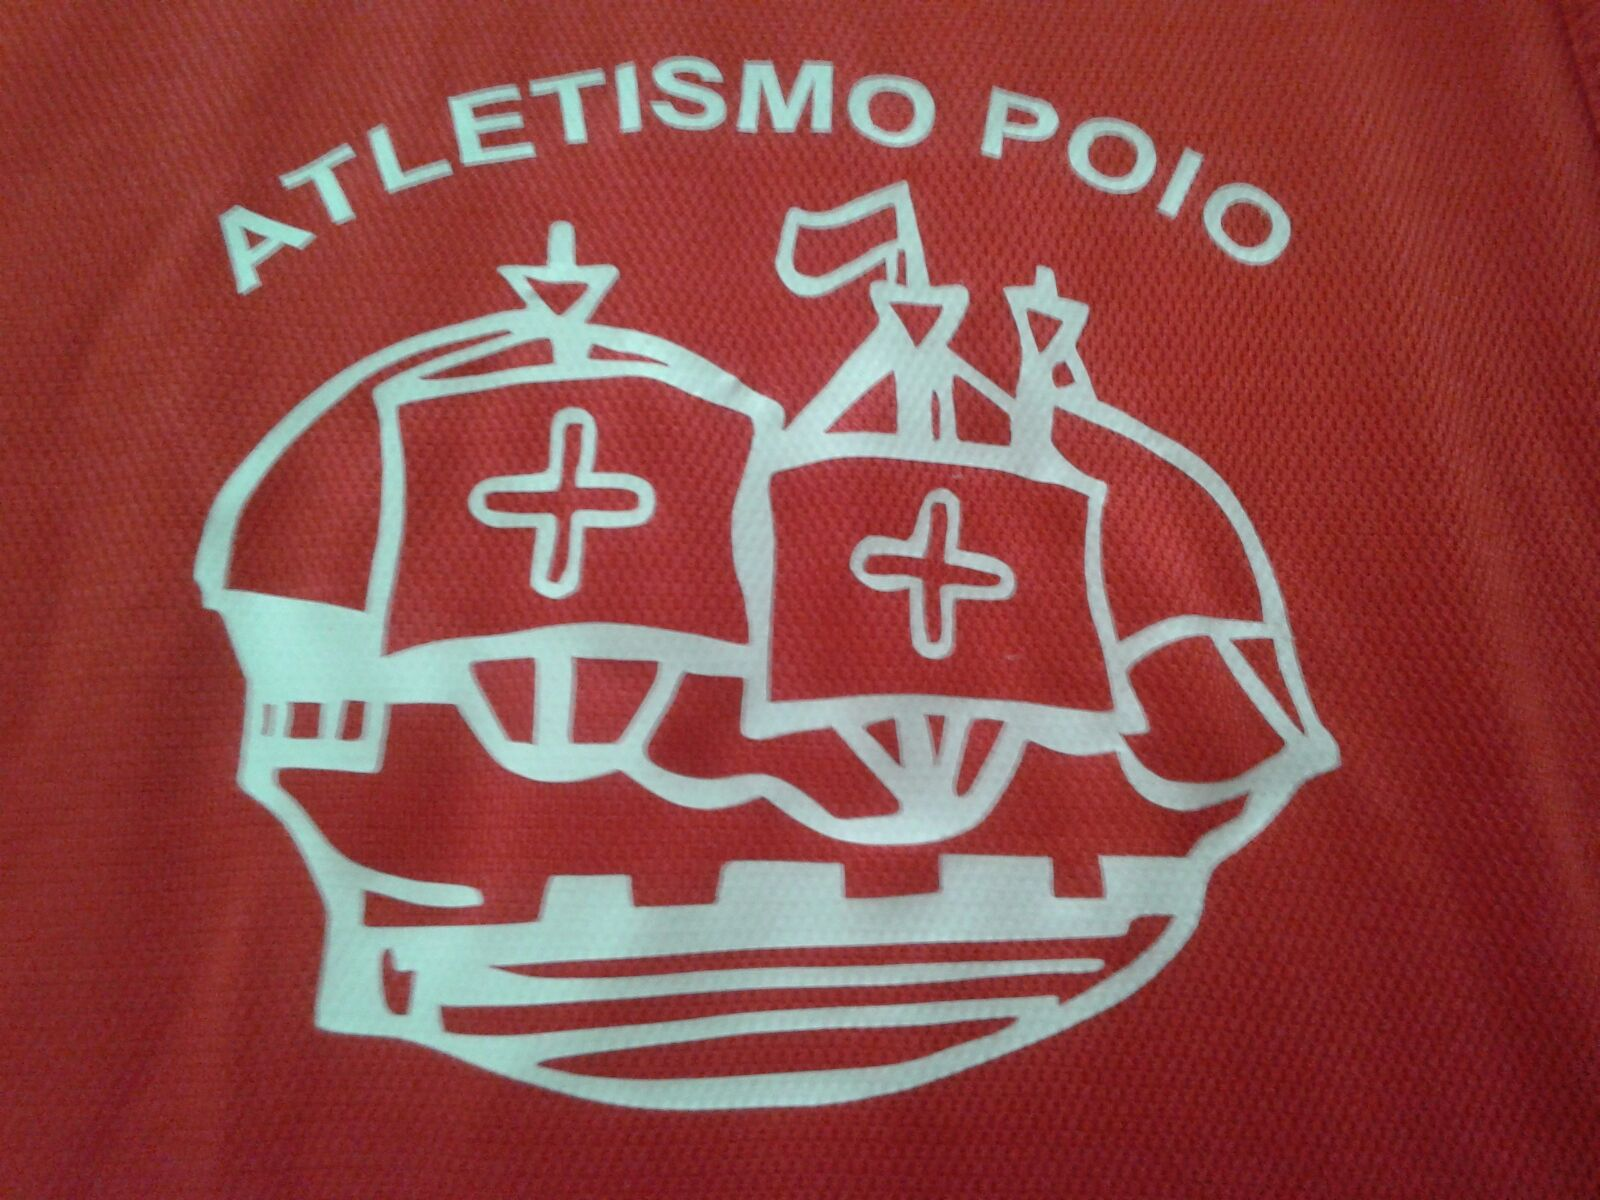 Club Atletismo Poio